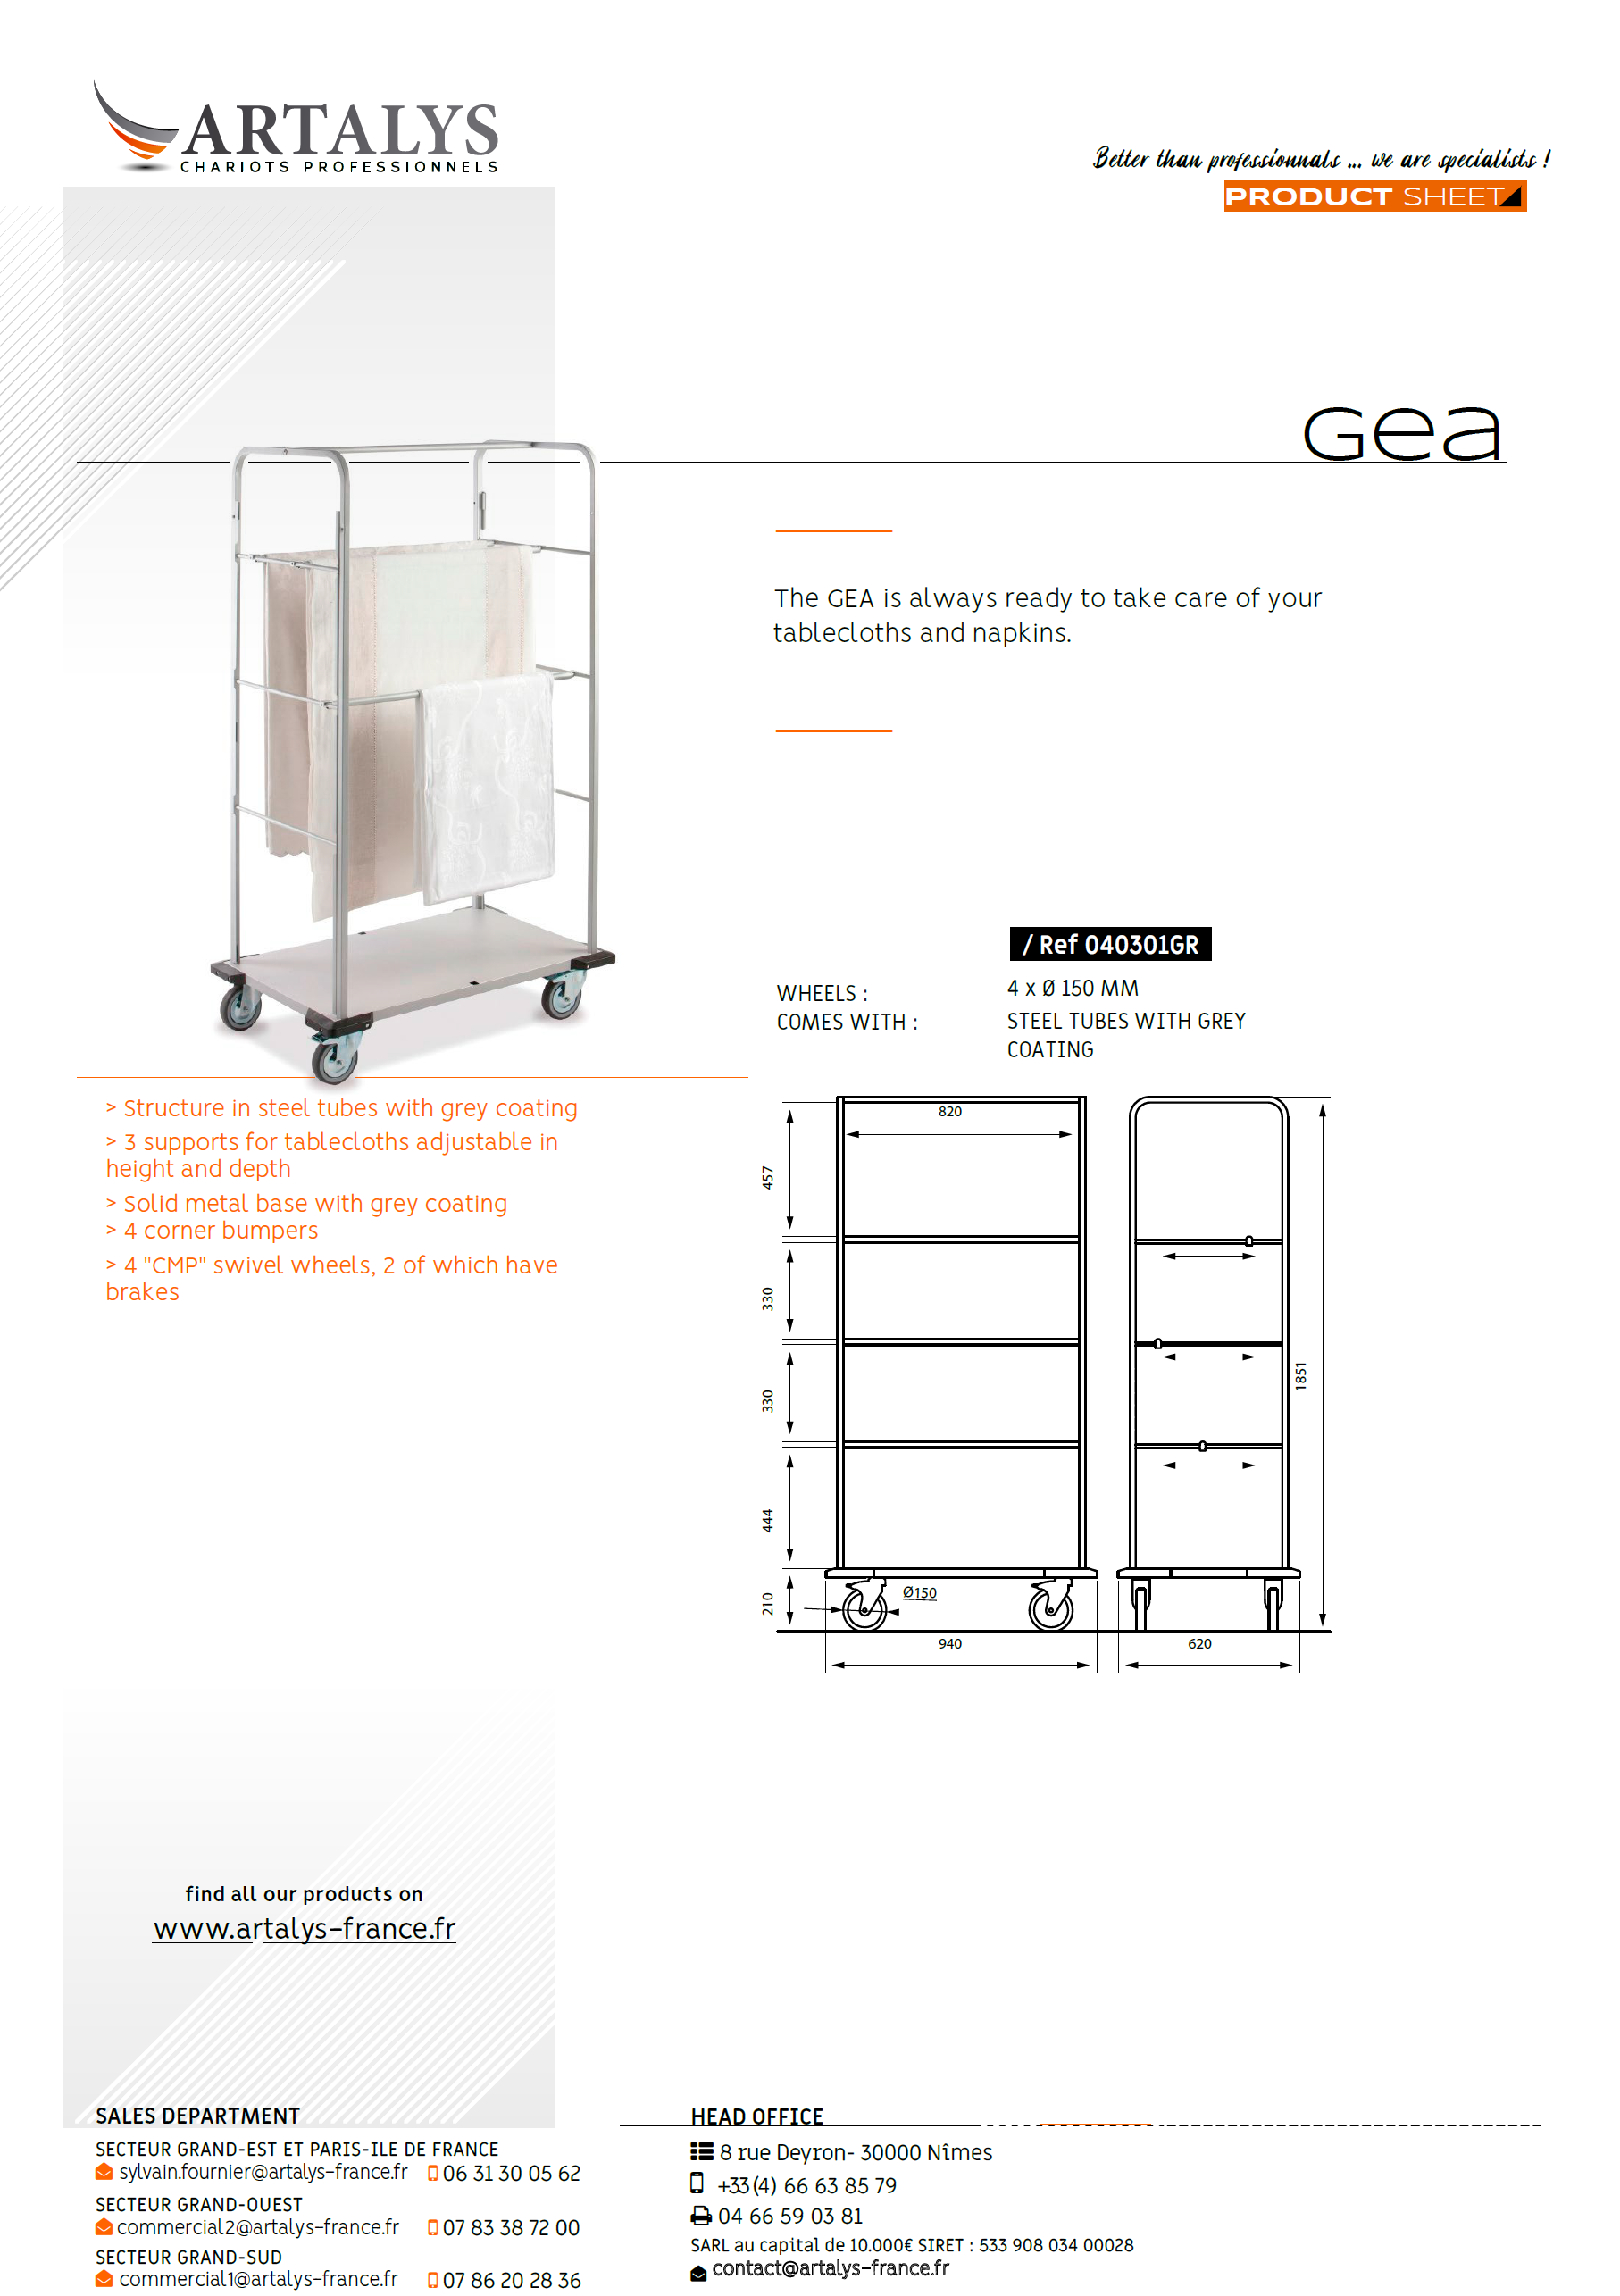 Product sheet of the GEA catering trolley